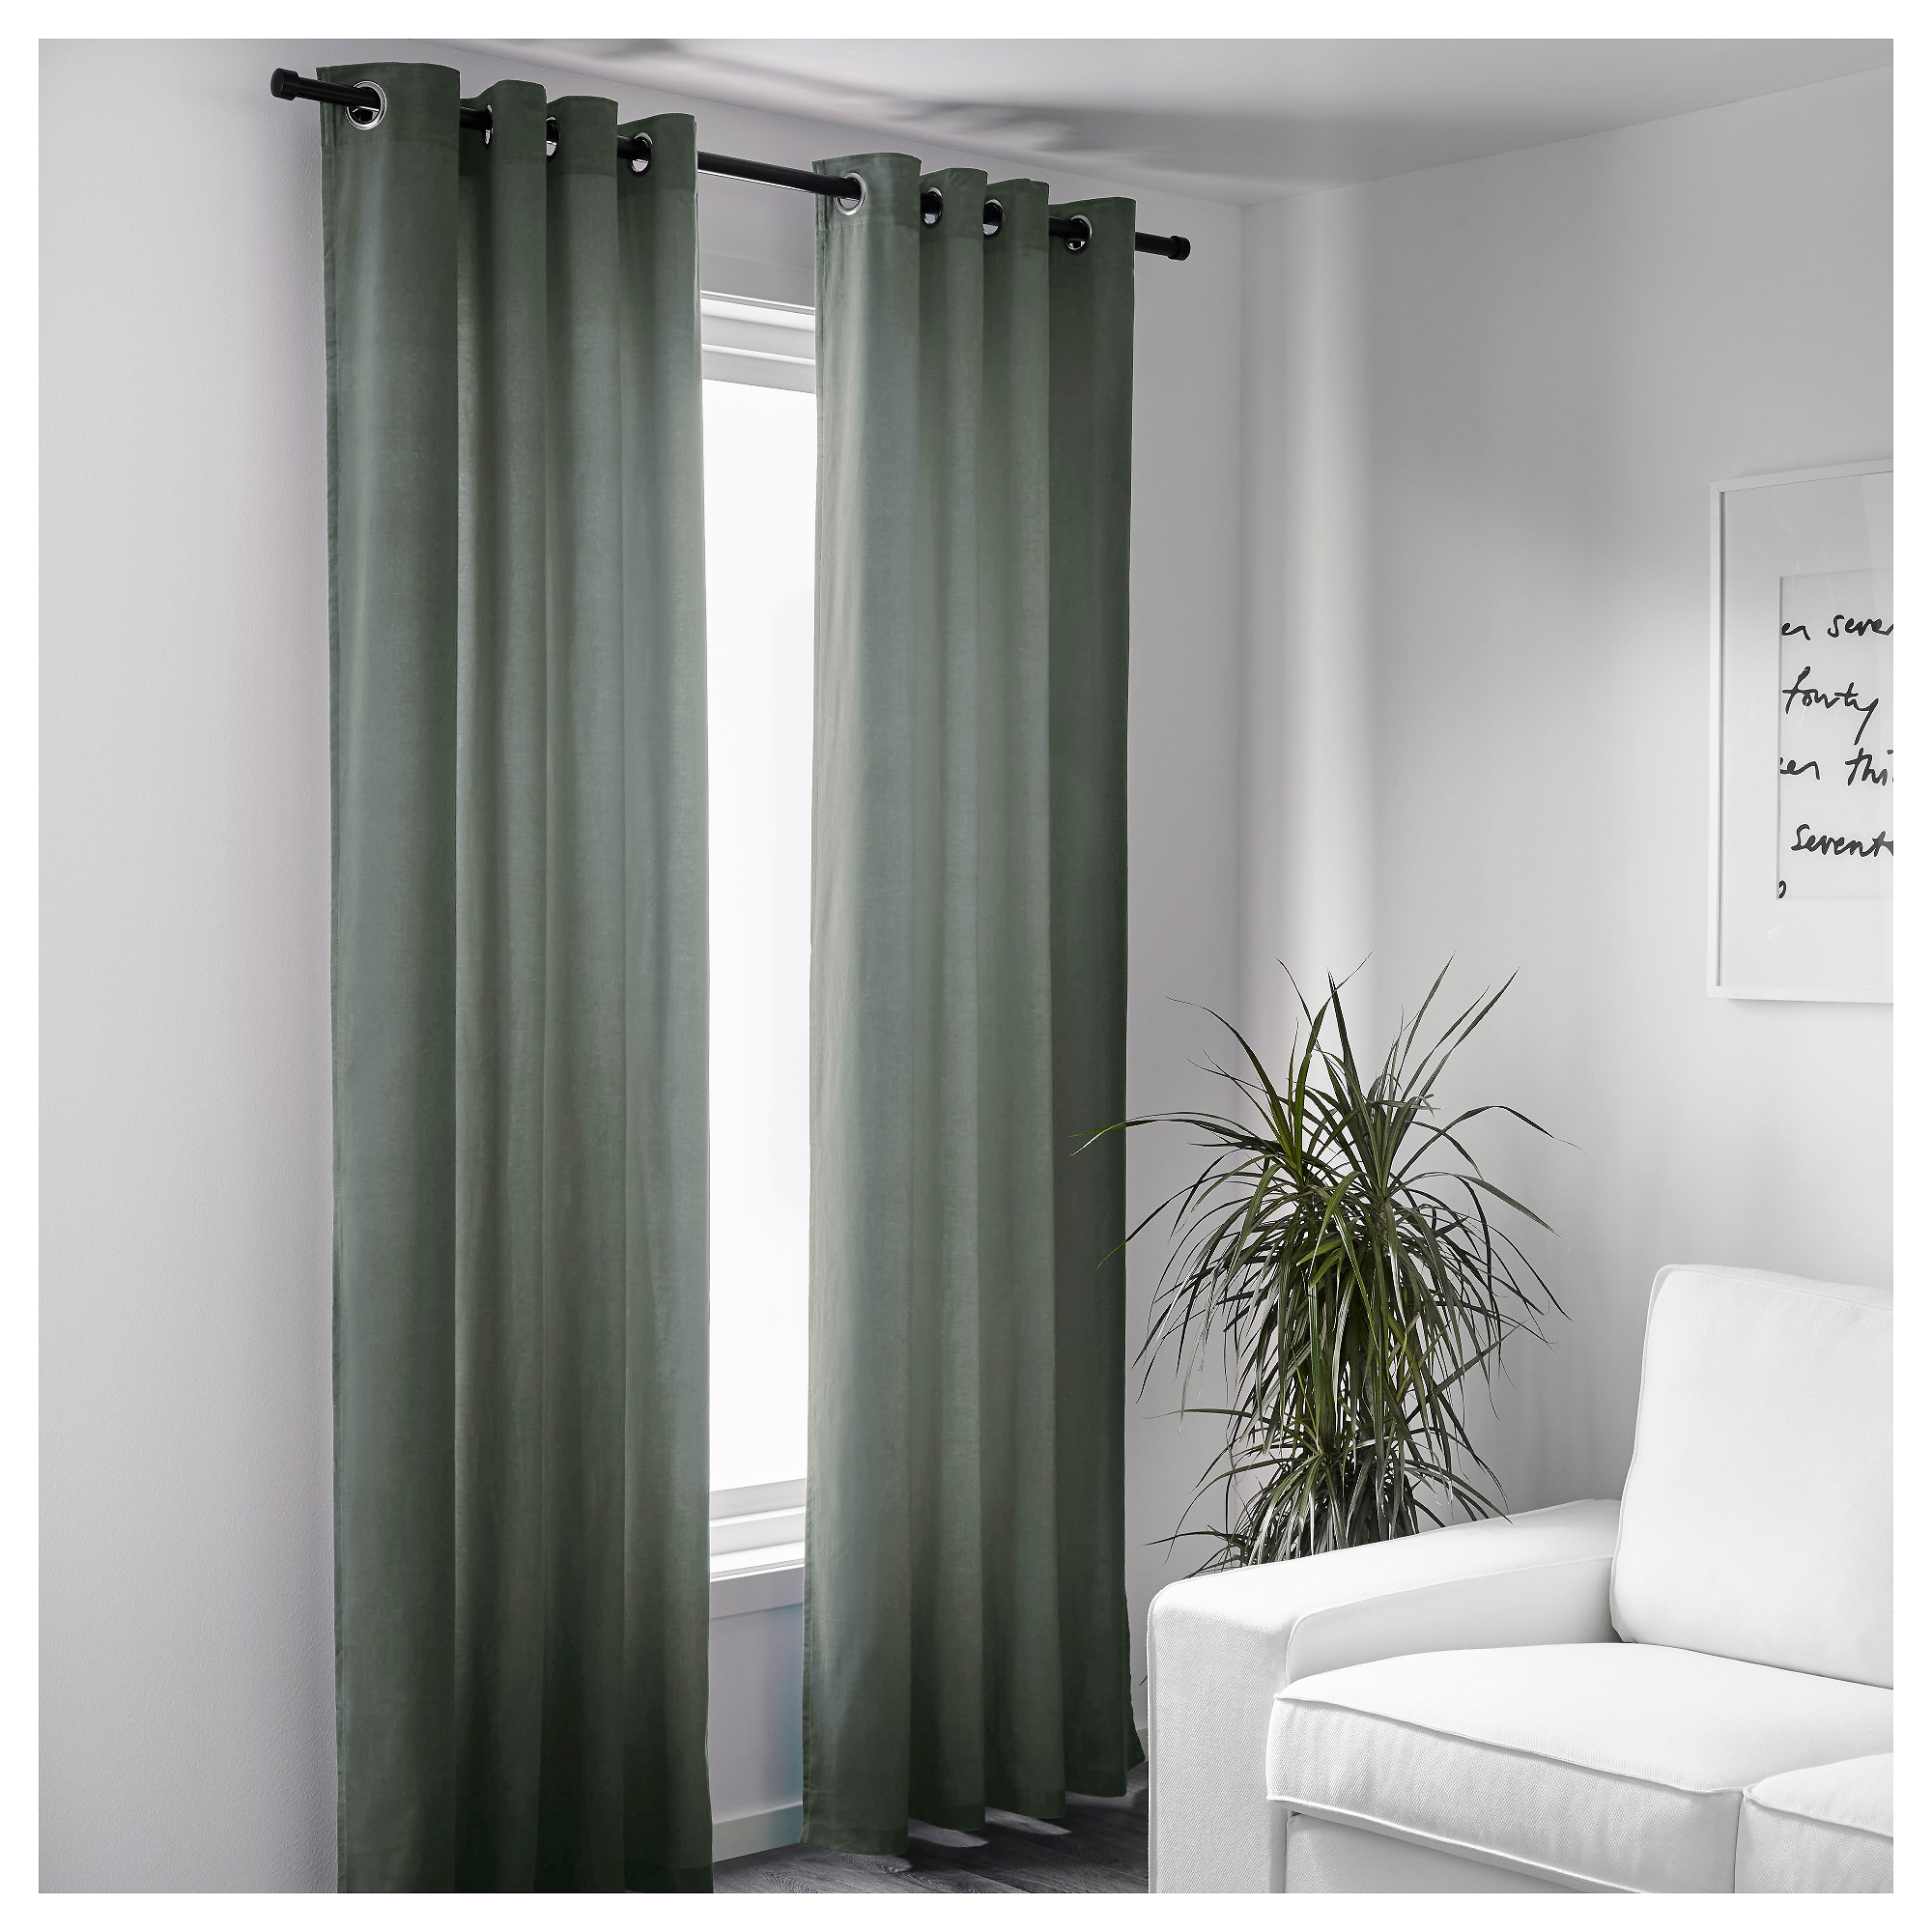 or as door emerald plants image draping curtain together and concept draped drapes with sliding well green kimono shocking plus ideas